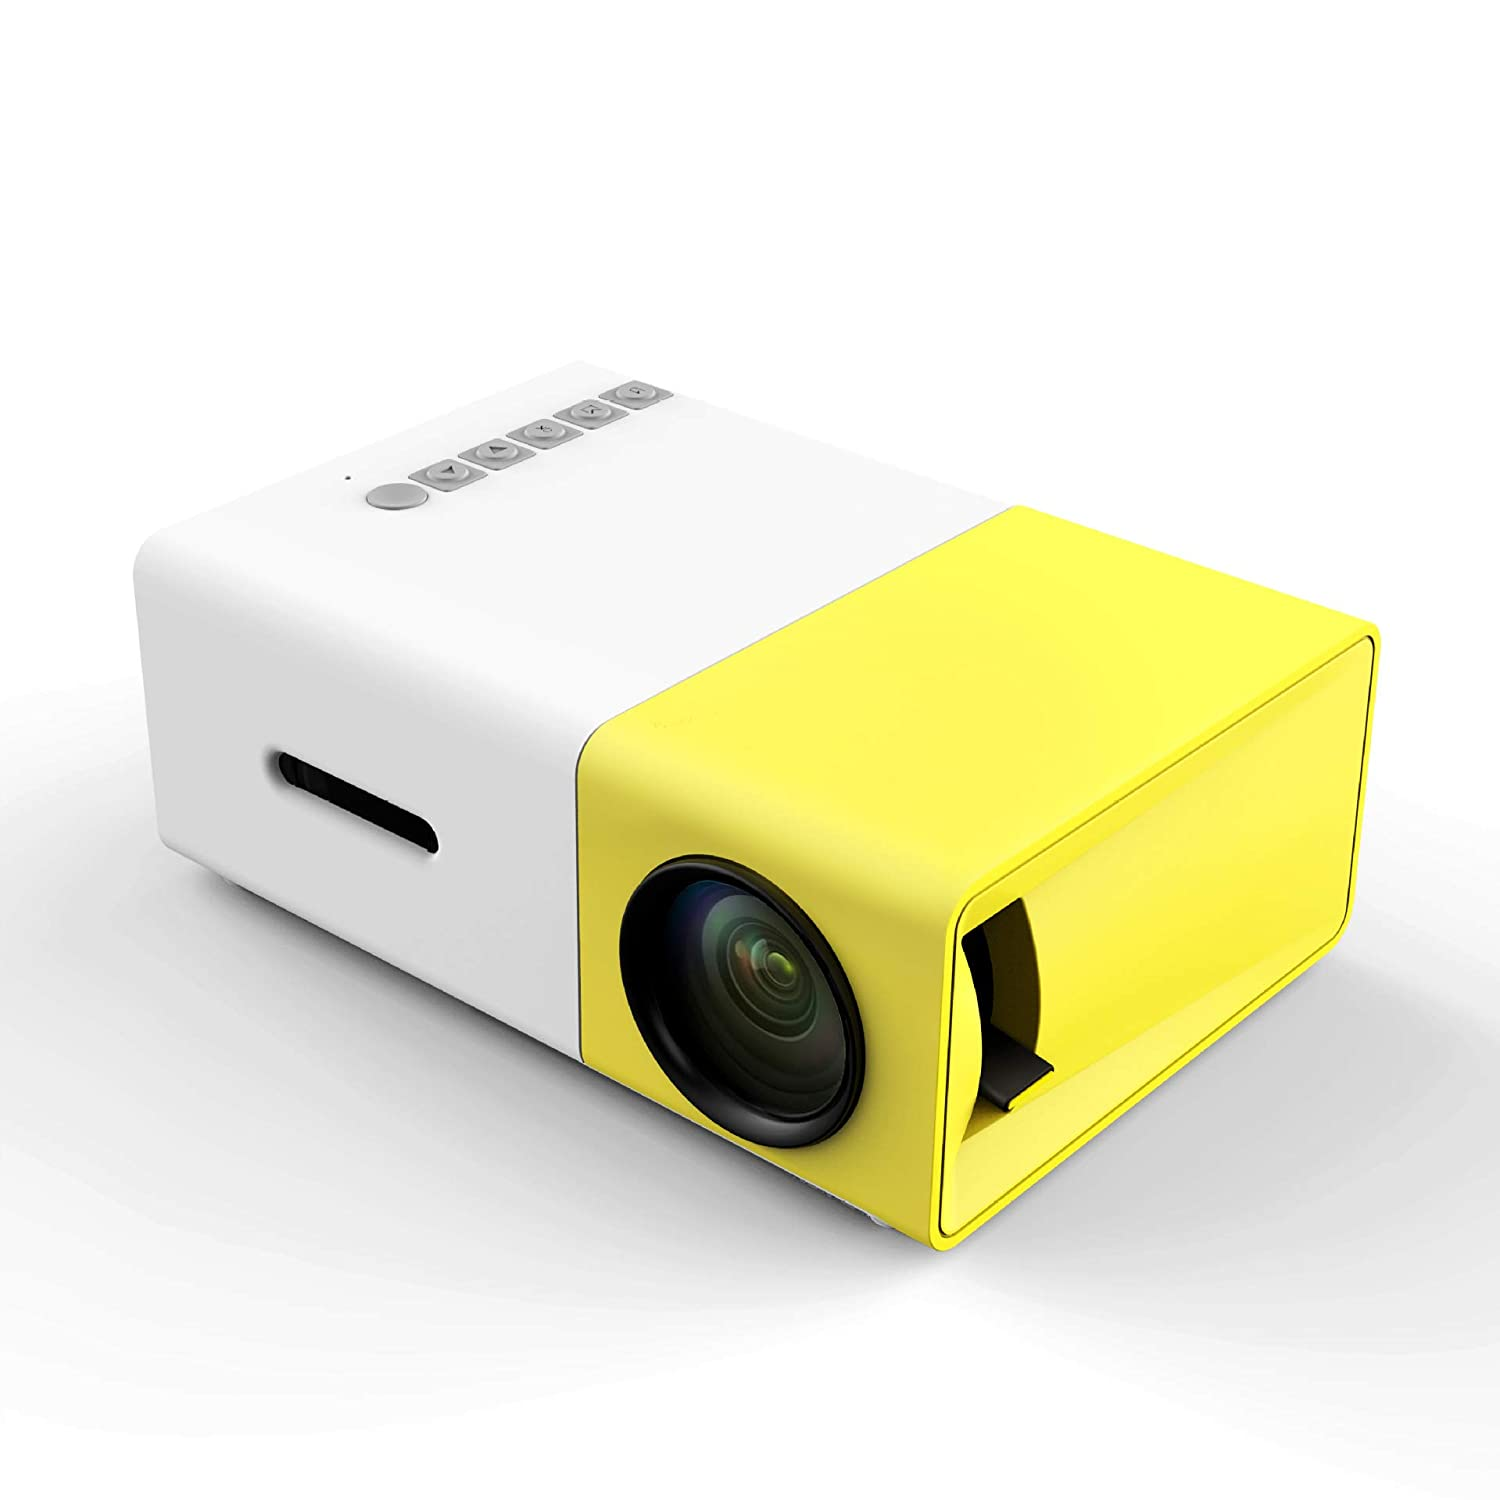 HKANG PA® Mini Proiettore, Proiettore Portatile LED per Home Entertainment Cinema con TV/AV/VGA/USB/HDMI,Yellow